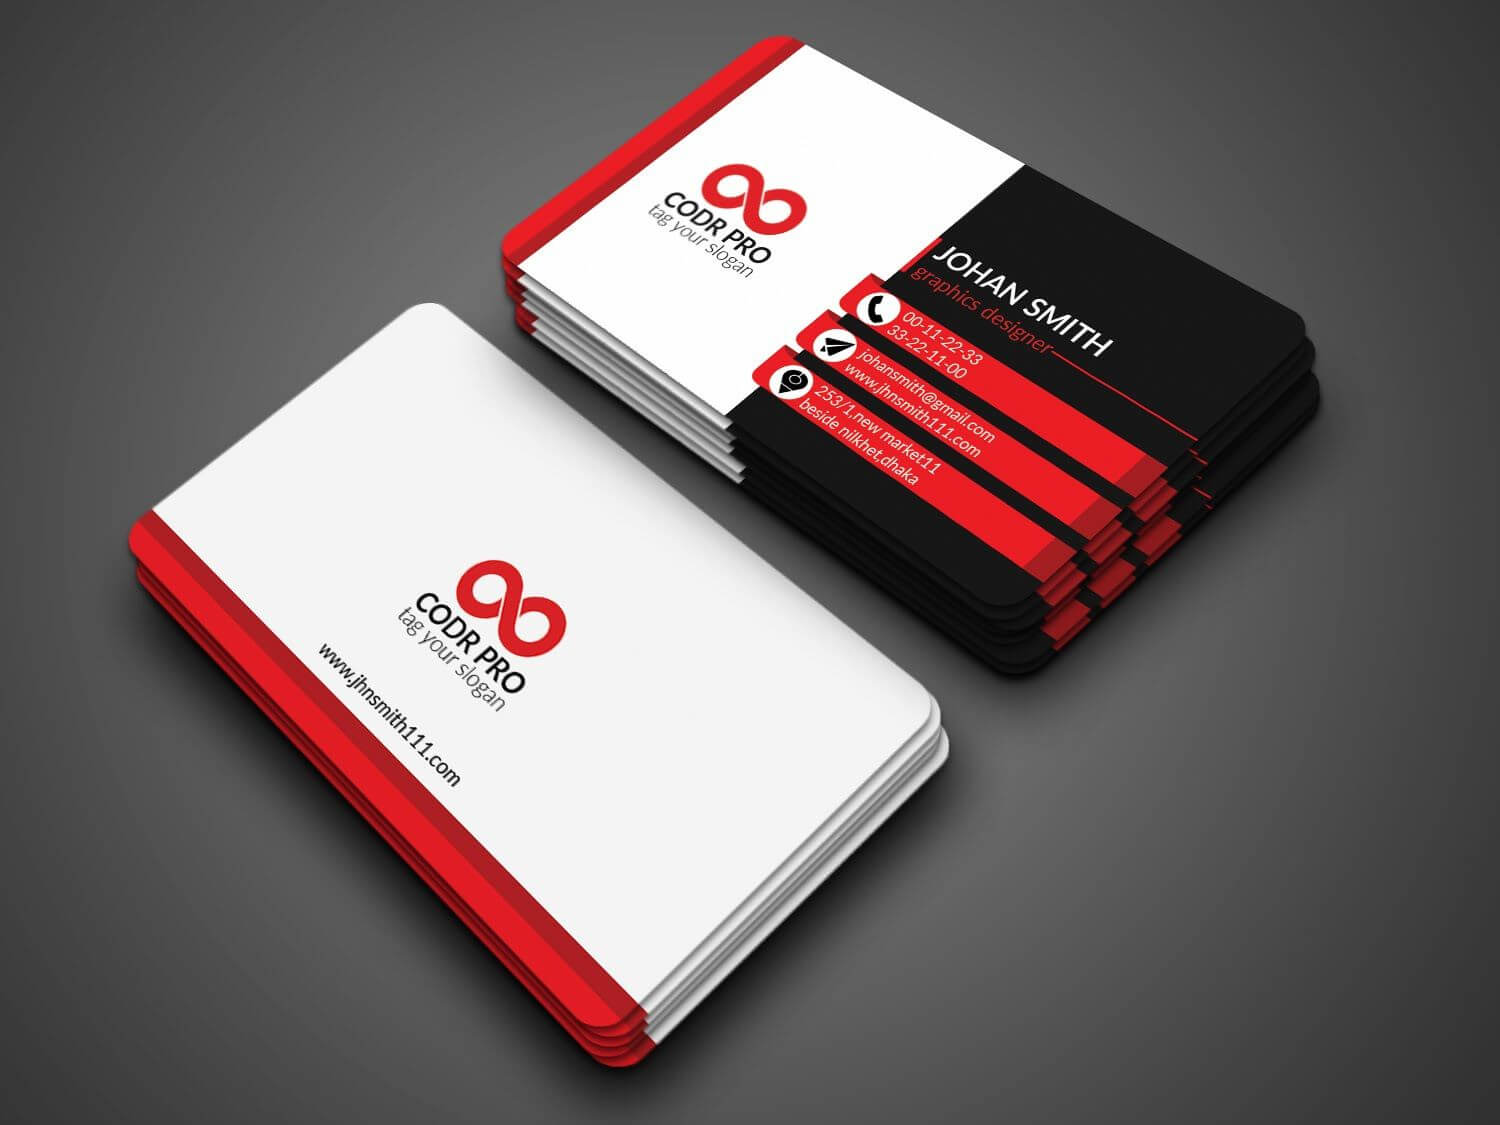 Professional Business Card Design In Photoshop Cs6 Tutorial In Photoshop Cs6 Business Card Template